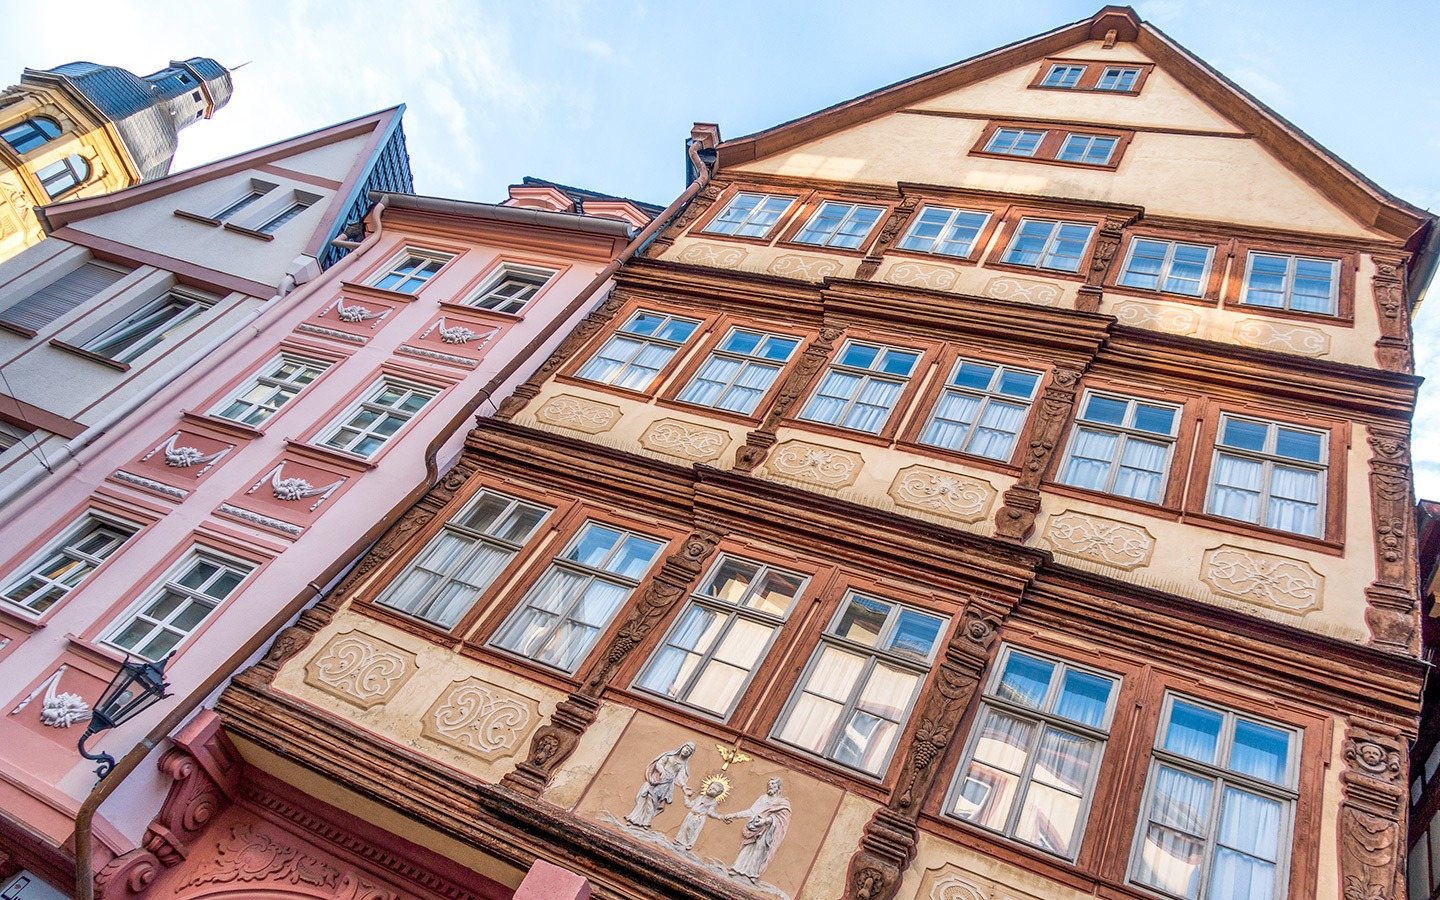 Half-timbered buildings in Mainz